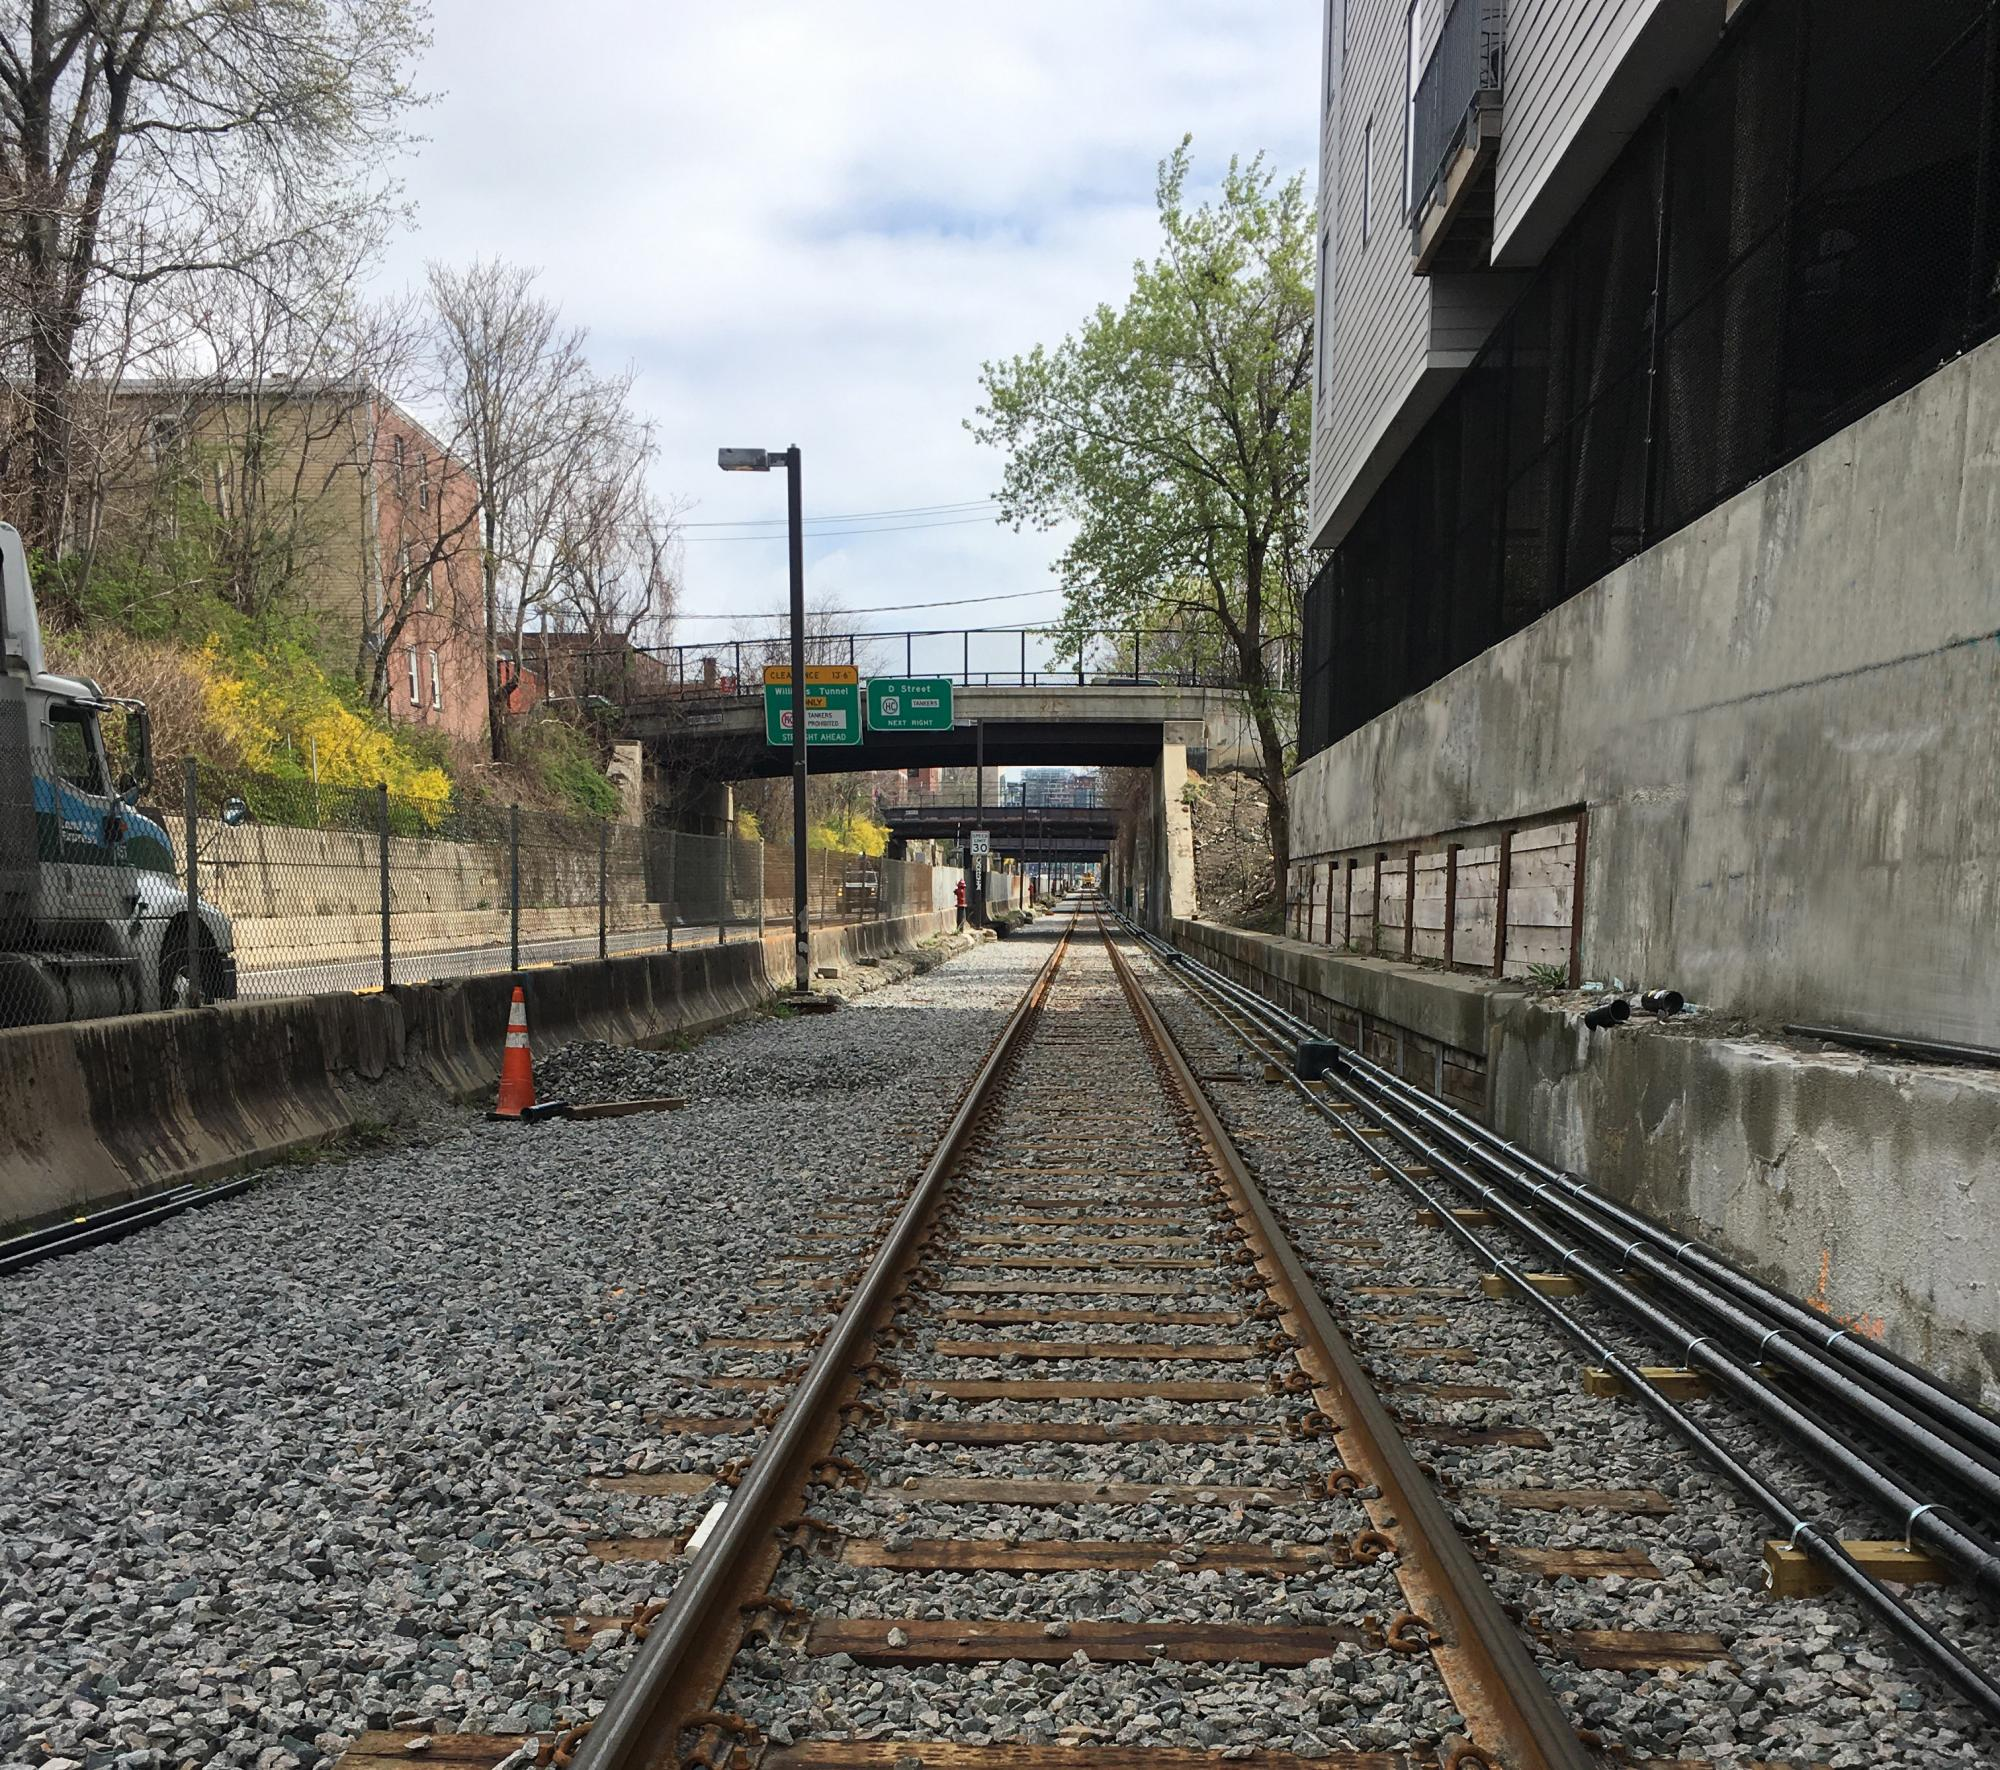 View of Test Track looking north near West 5th Street in South Boston (April 2019)